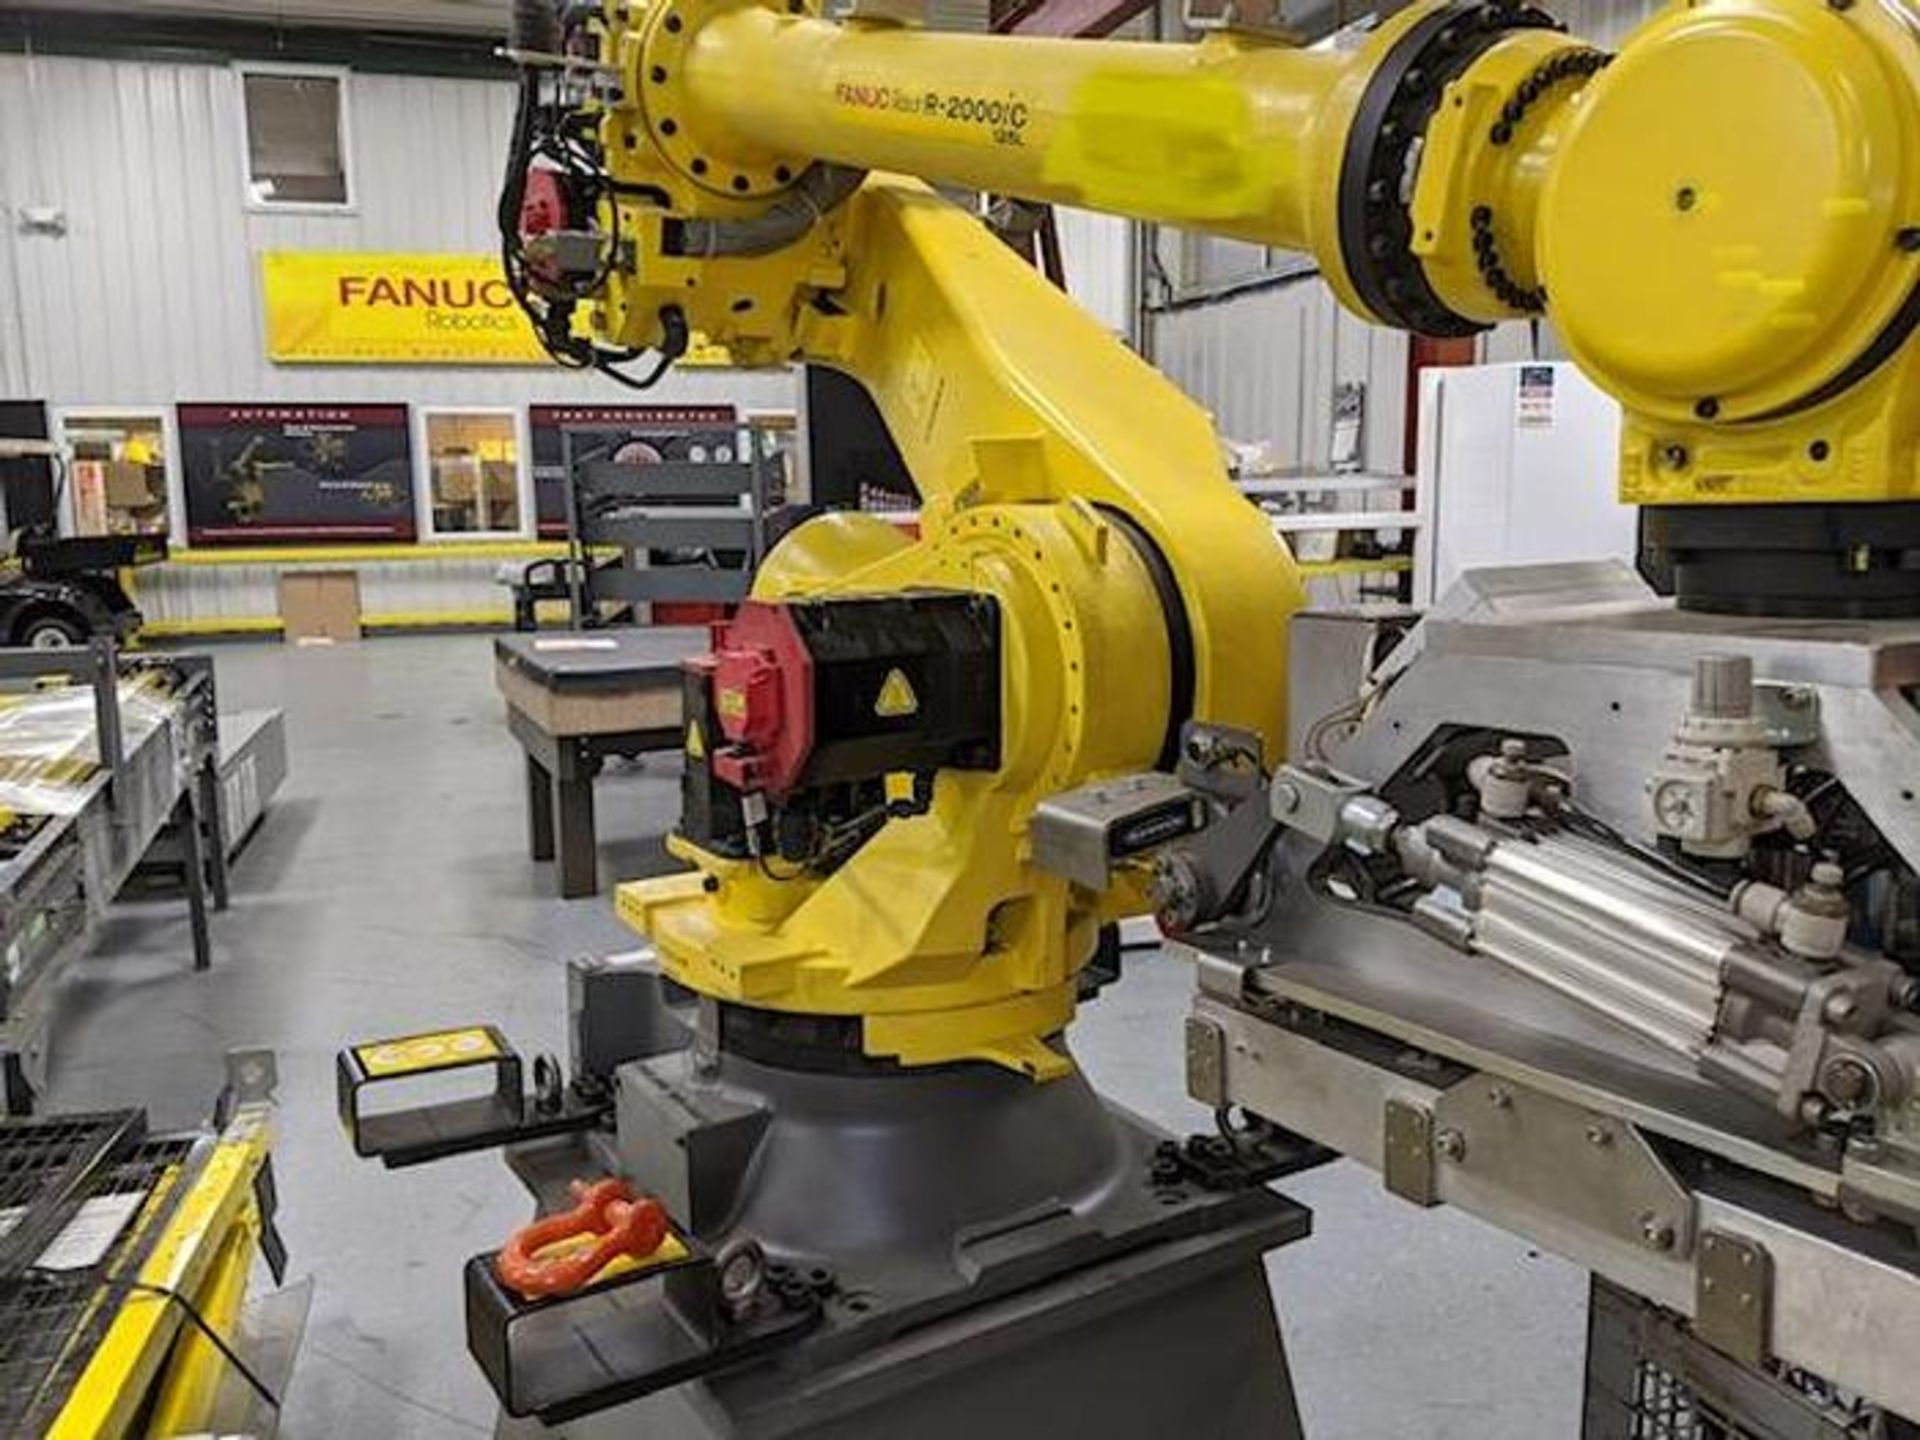 FANUC ROBOT R2000iC/125L 6 AXIS ROBOT WITH R30iB CONTROLLER, IR VISION, SN 194246, CABLES & TEACH - Image 7 of 19